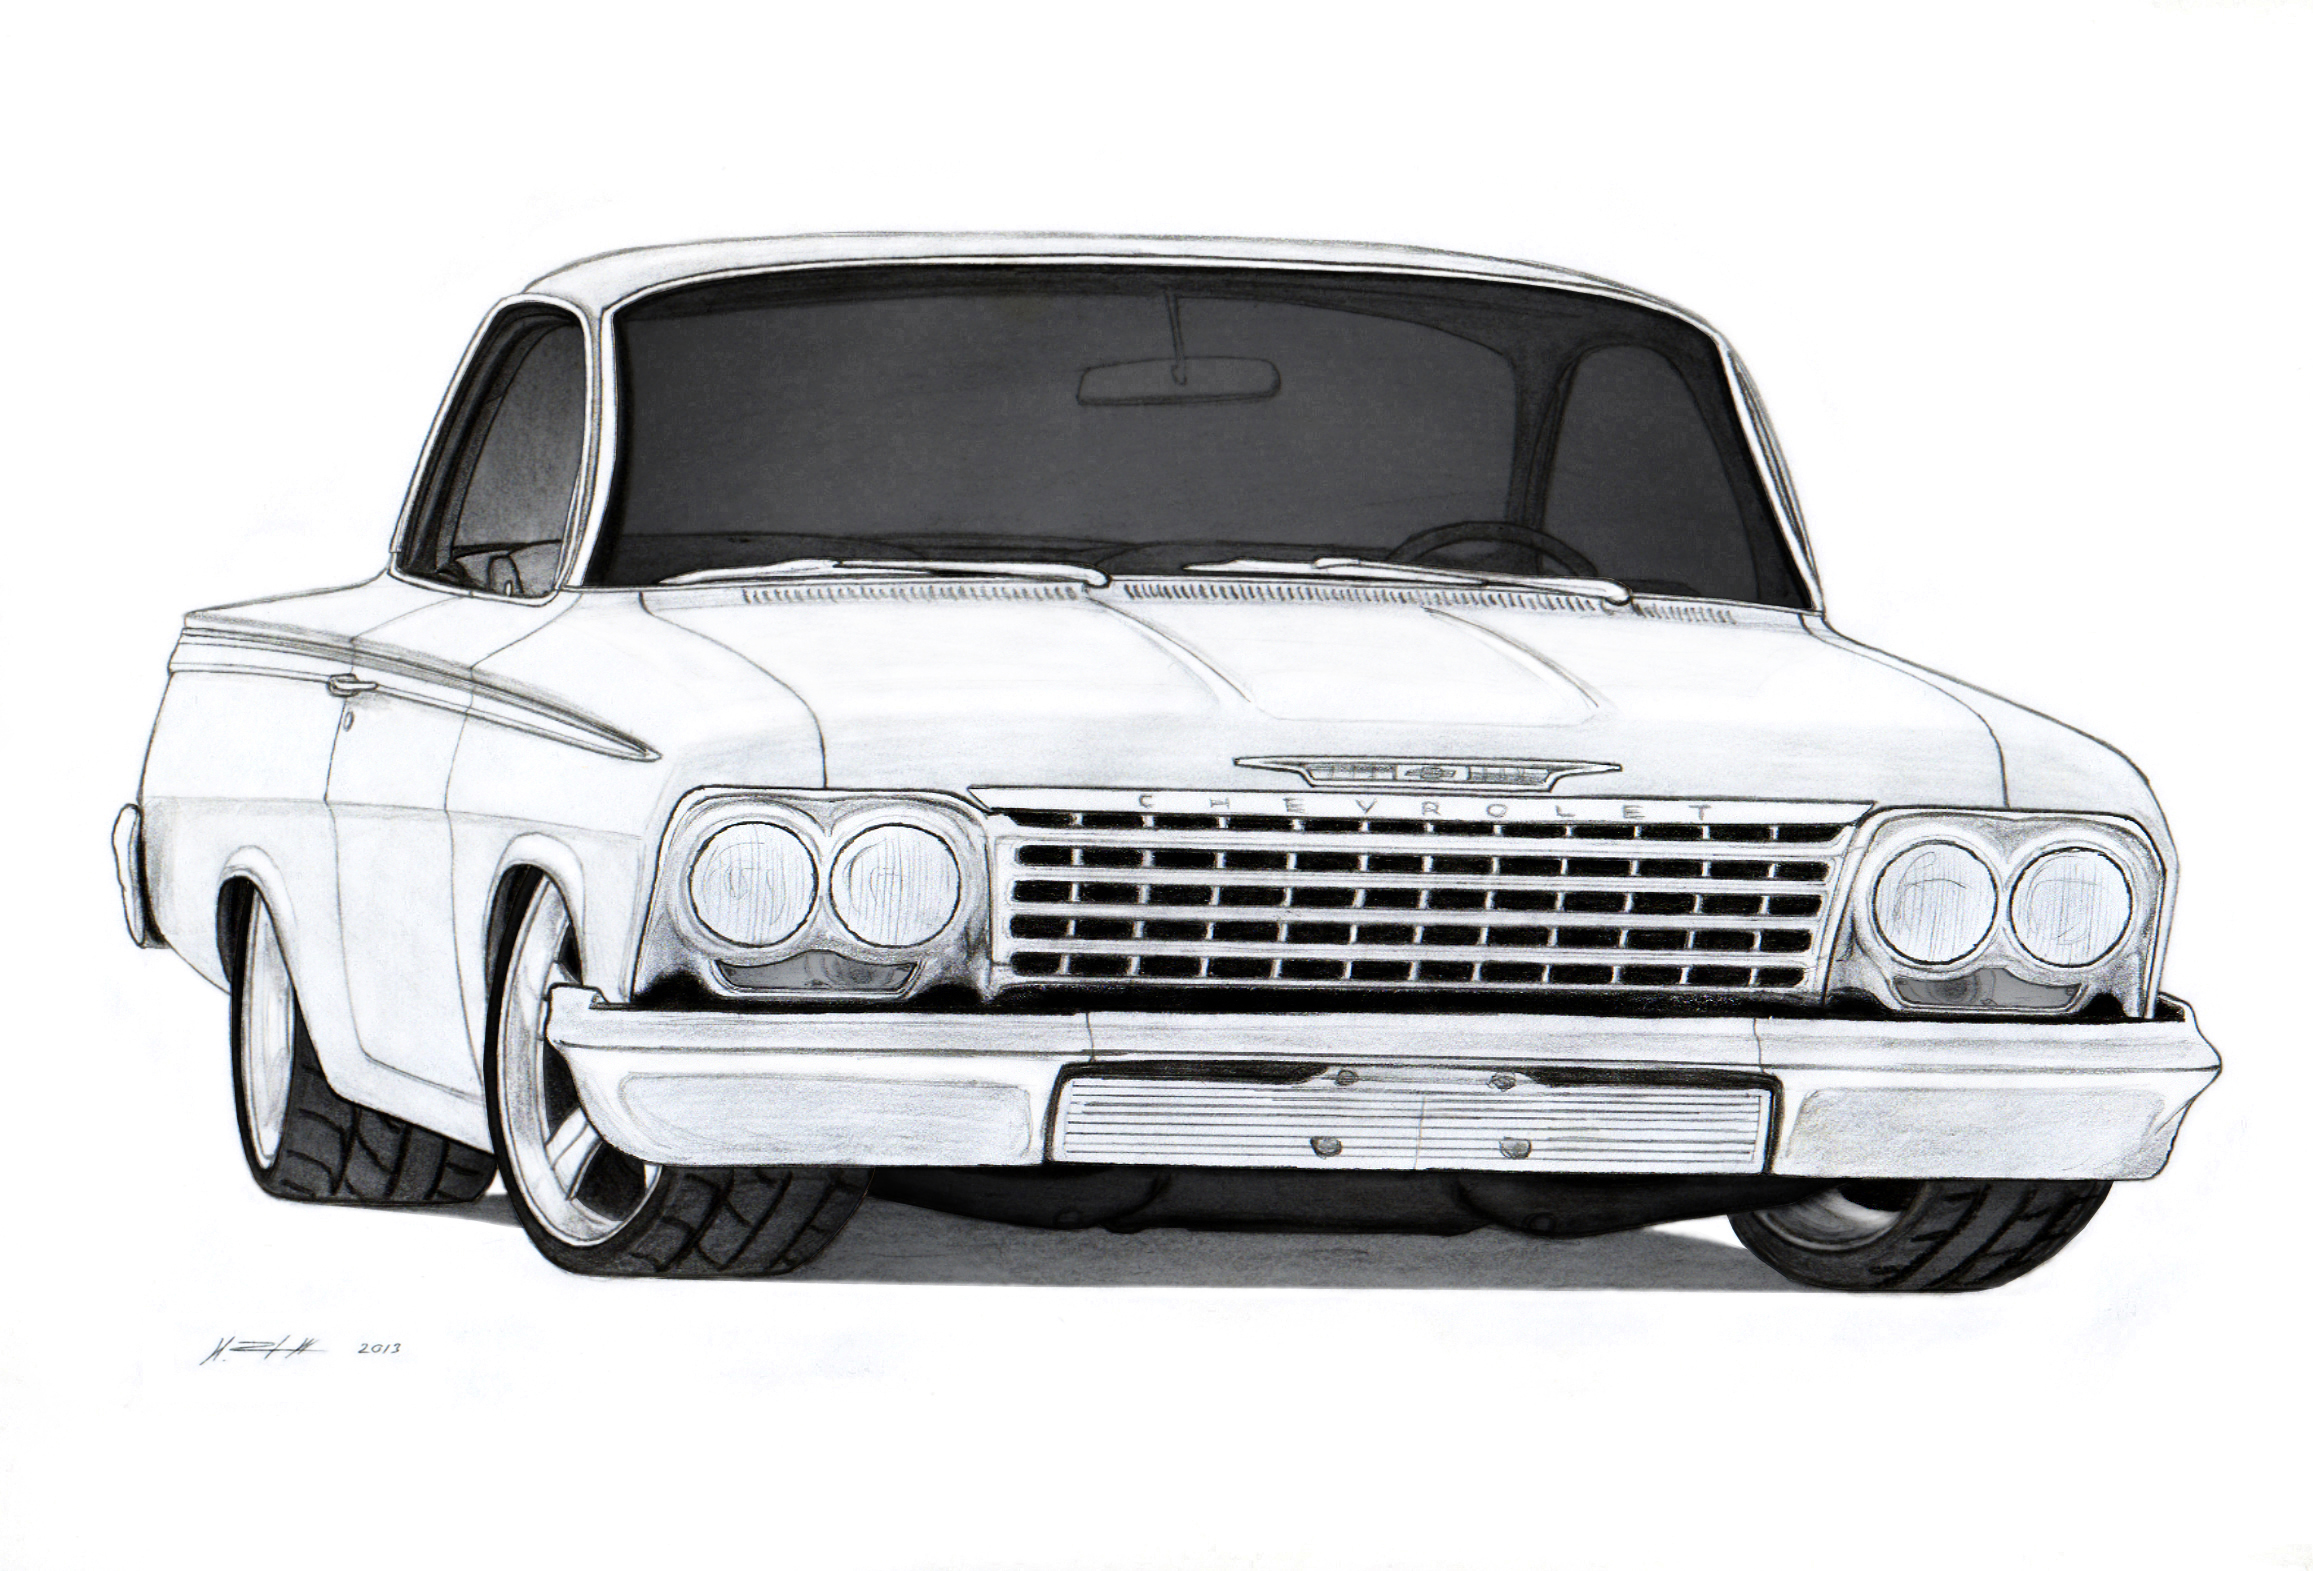 1962 Chevrolet Bel Air Sport Coupe Drawing By